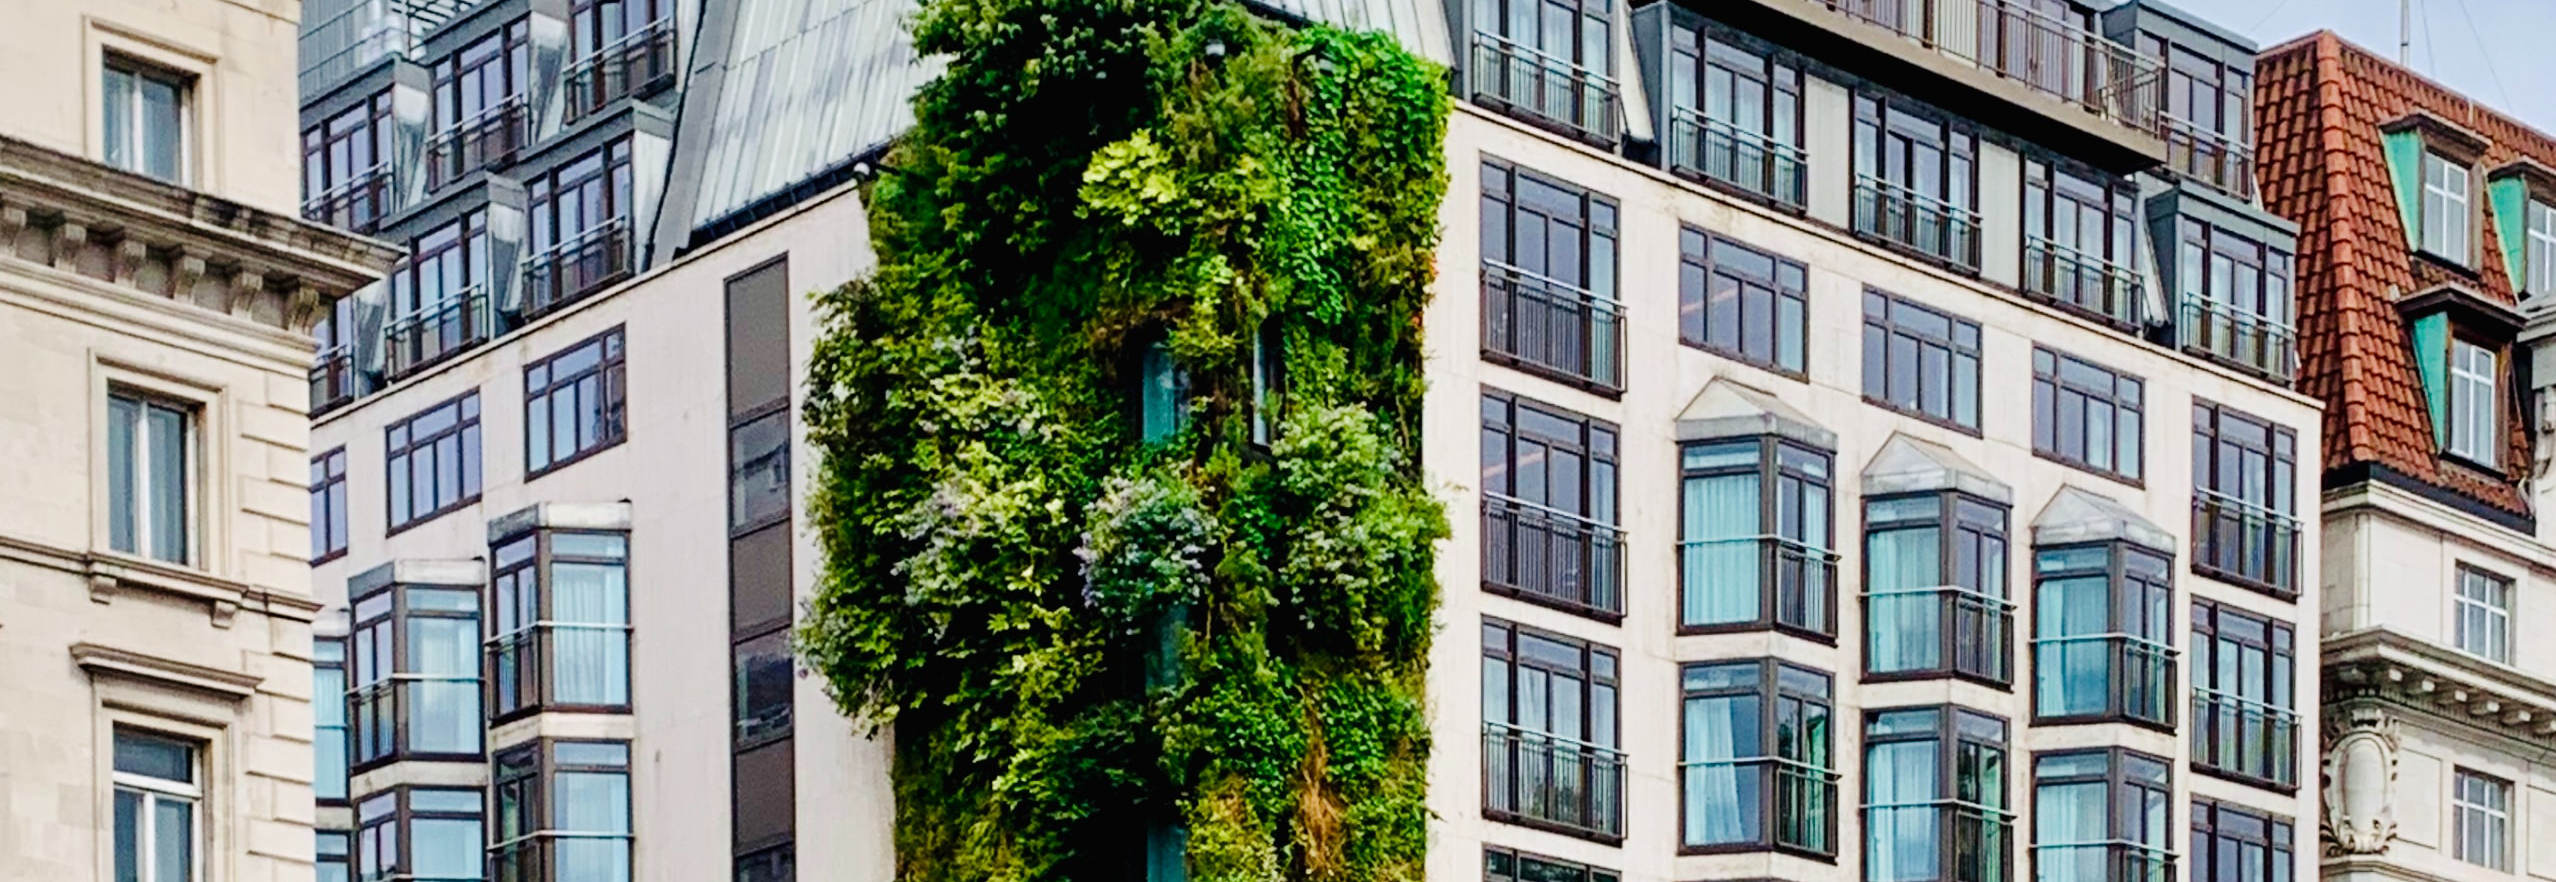 Green wall installation on the side of a building